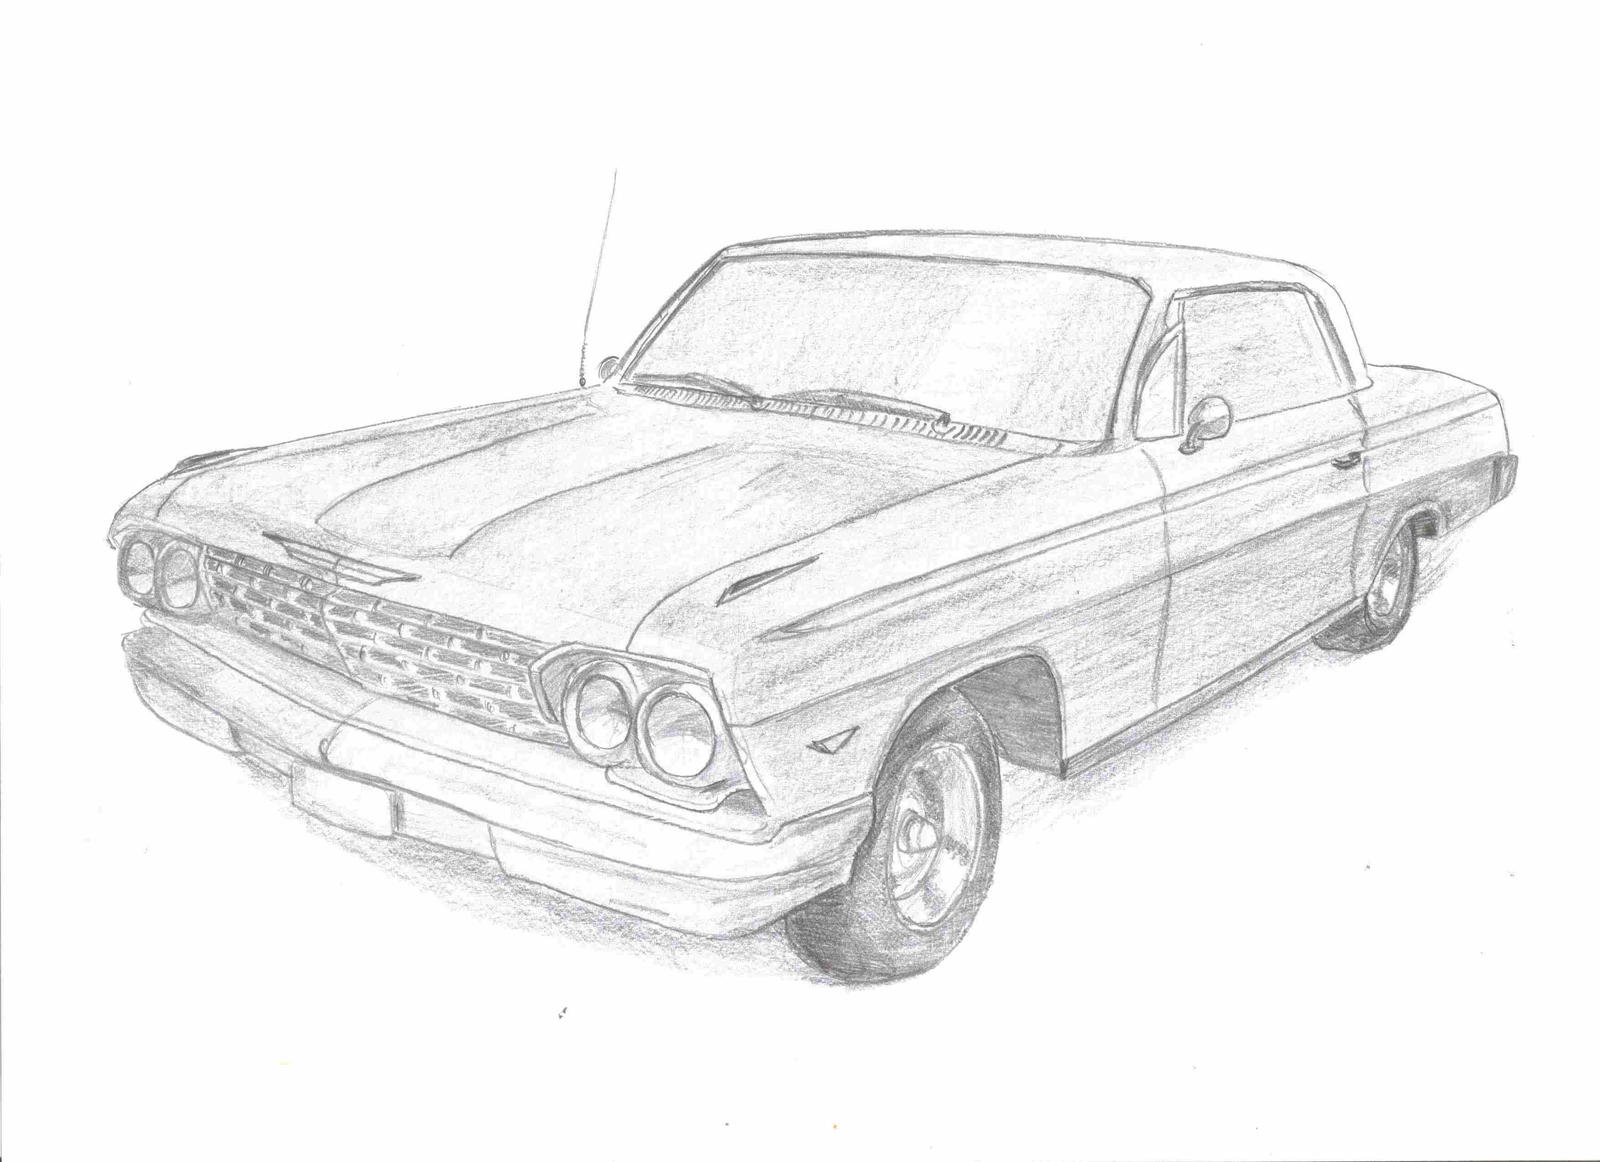 1962 chevrolet impala hardtop by pizdexxx on deviantart